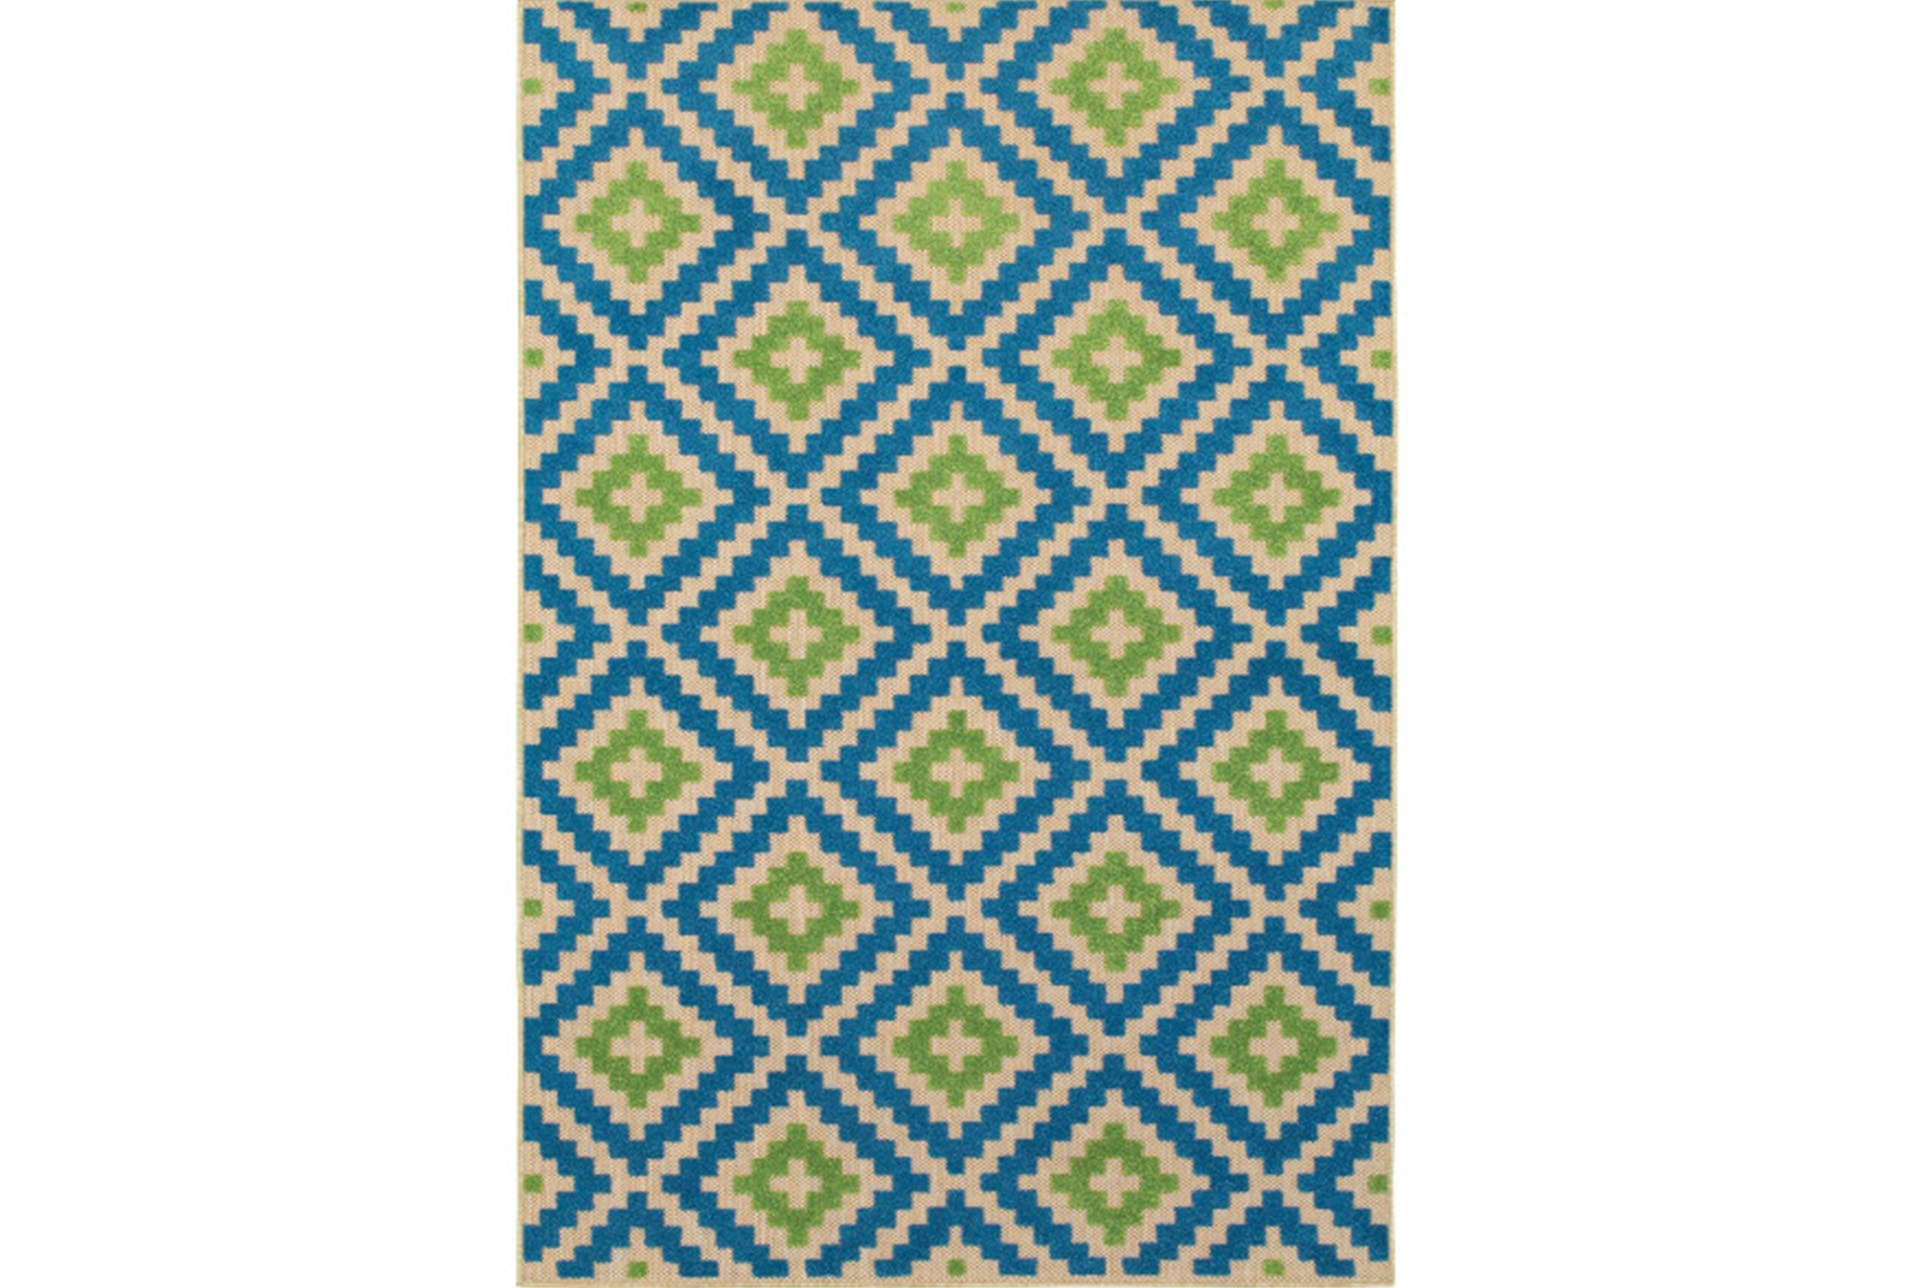 94x130 Outdoor Rug Lime And Blue Birds Eye Qty 1 Has Been Successfully Added To Your Cart